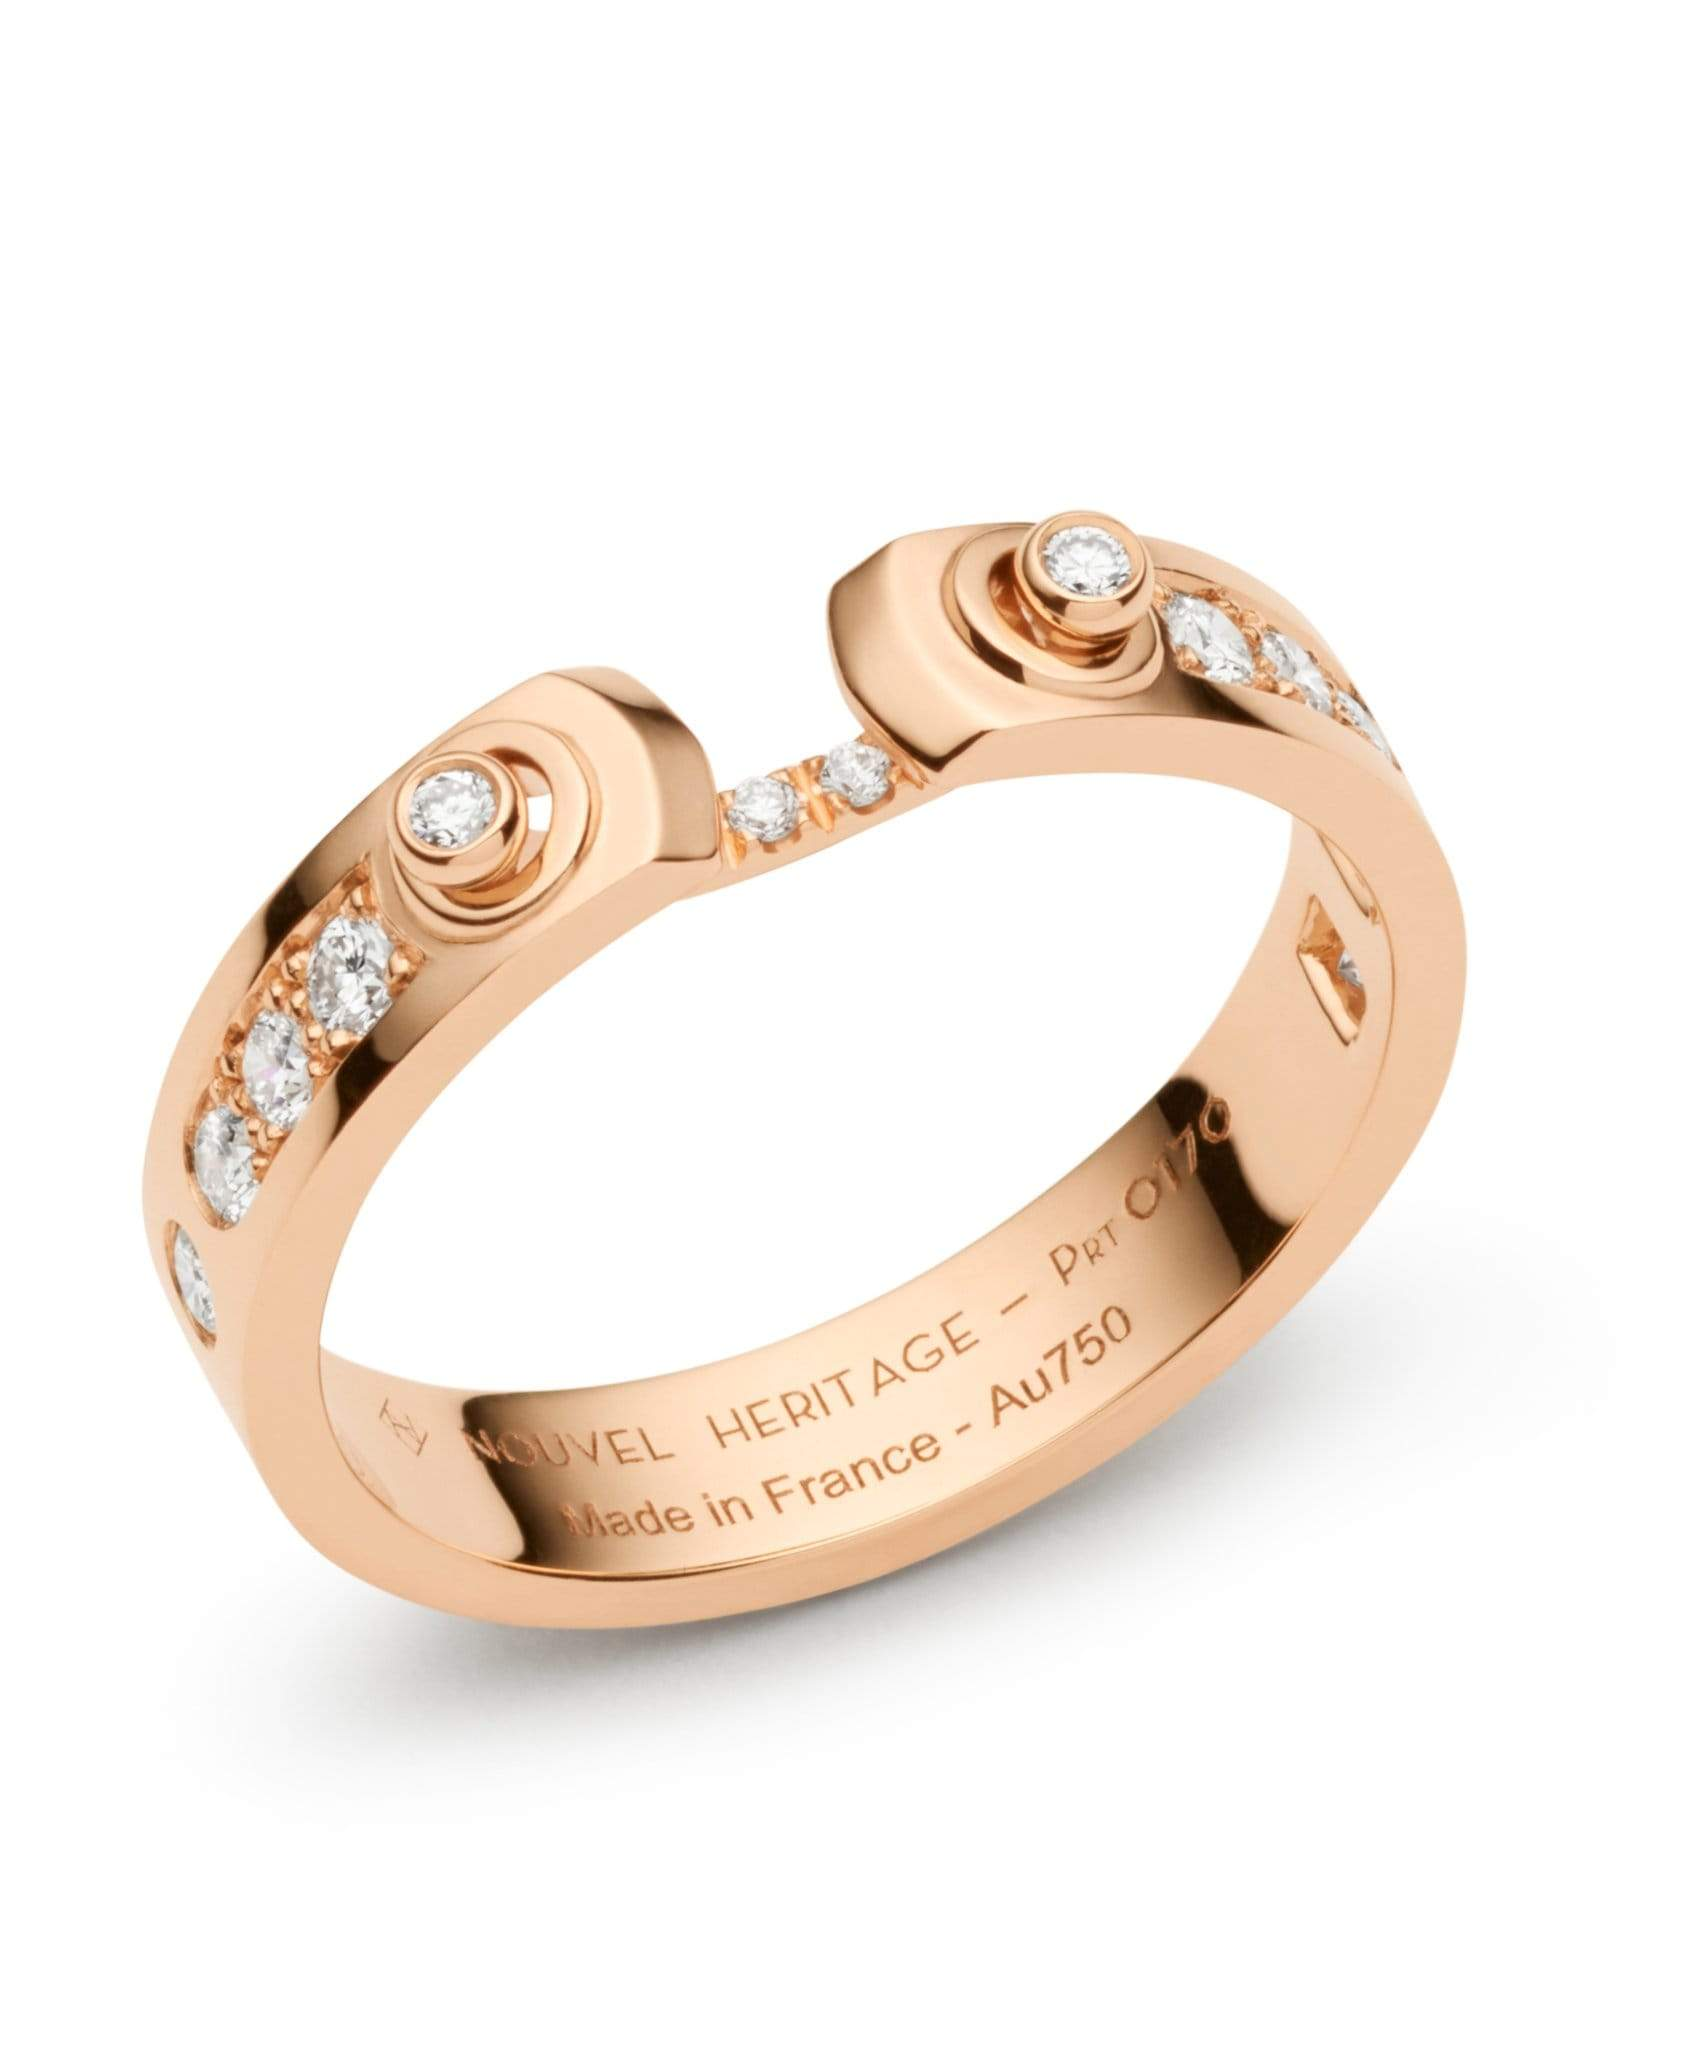 Tuxedo Mood Ring: Discover Luxury Fine Jewelry | Nouvel Heritage || Rose Gold